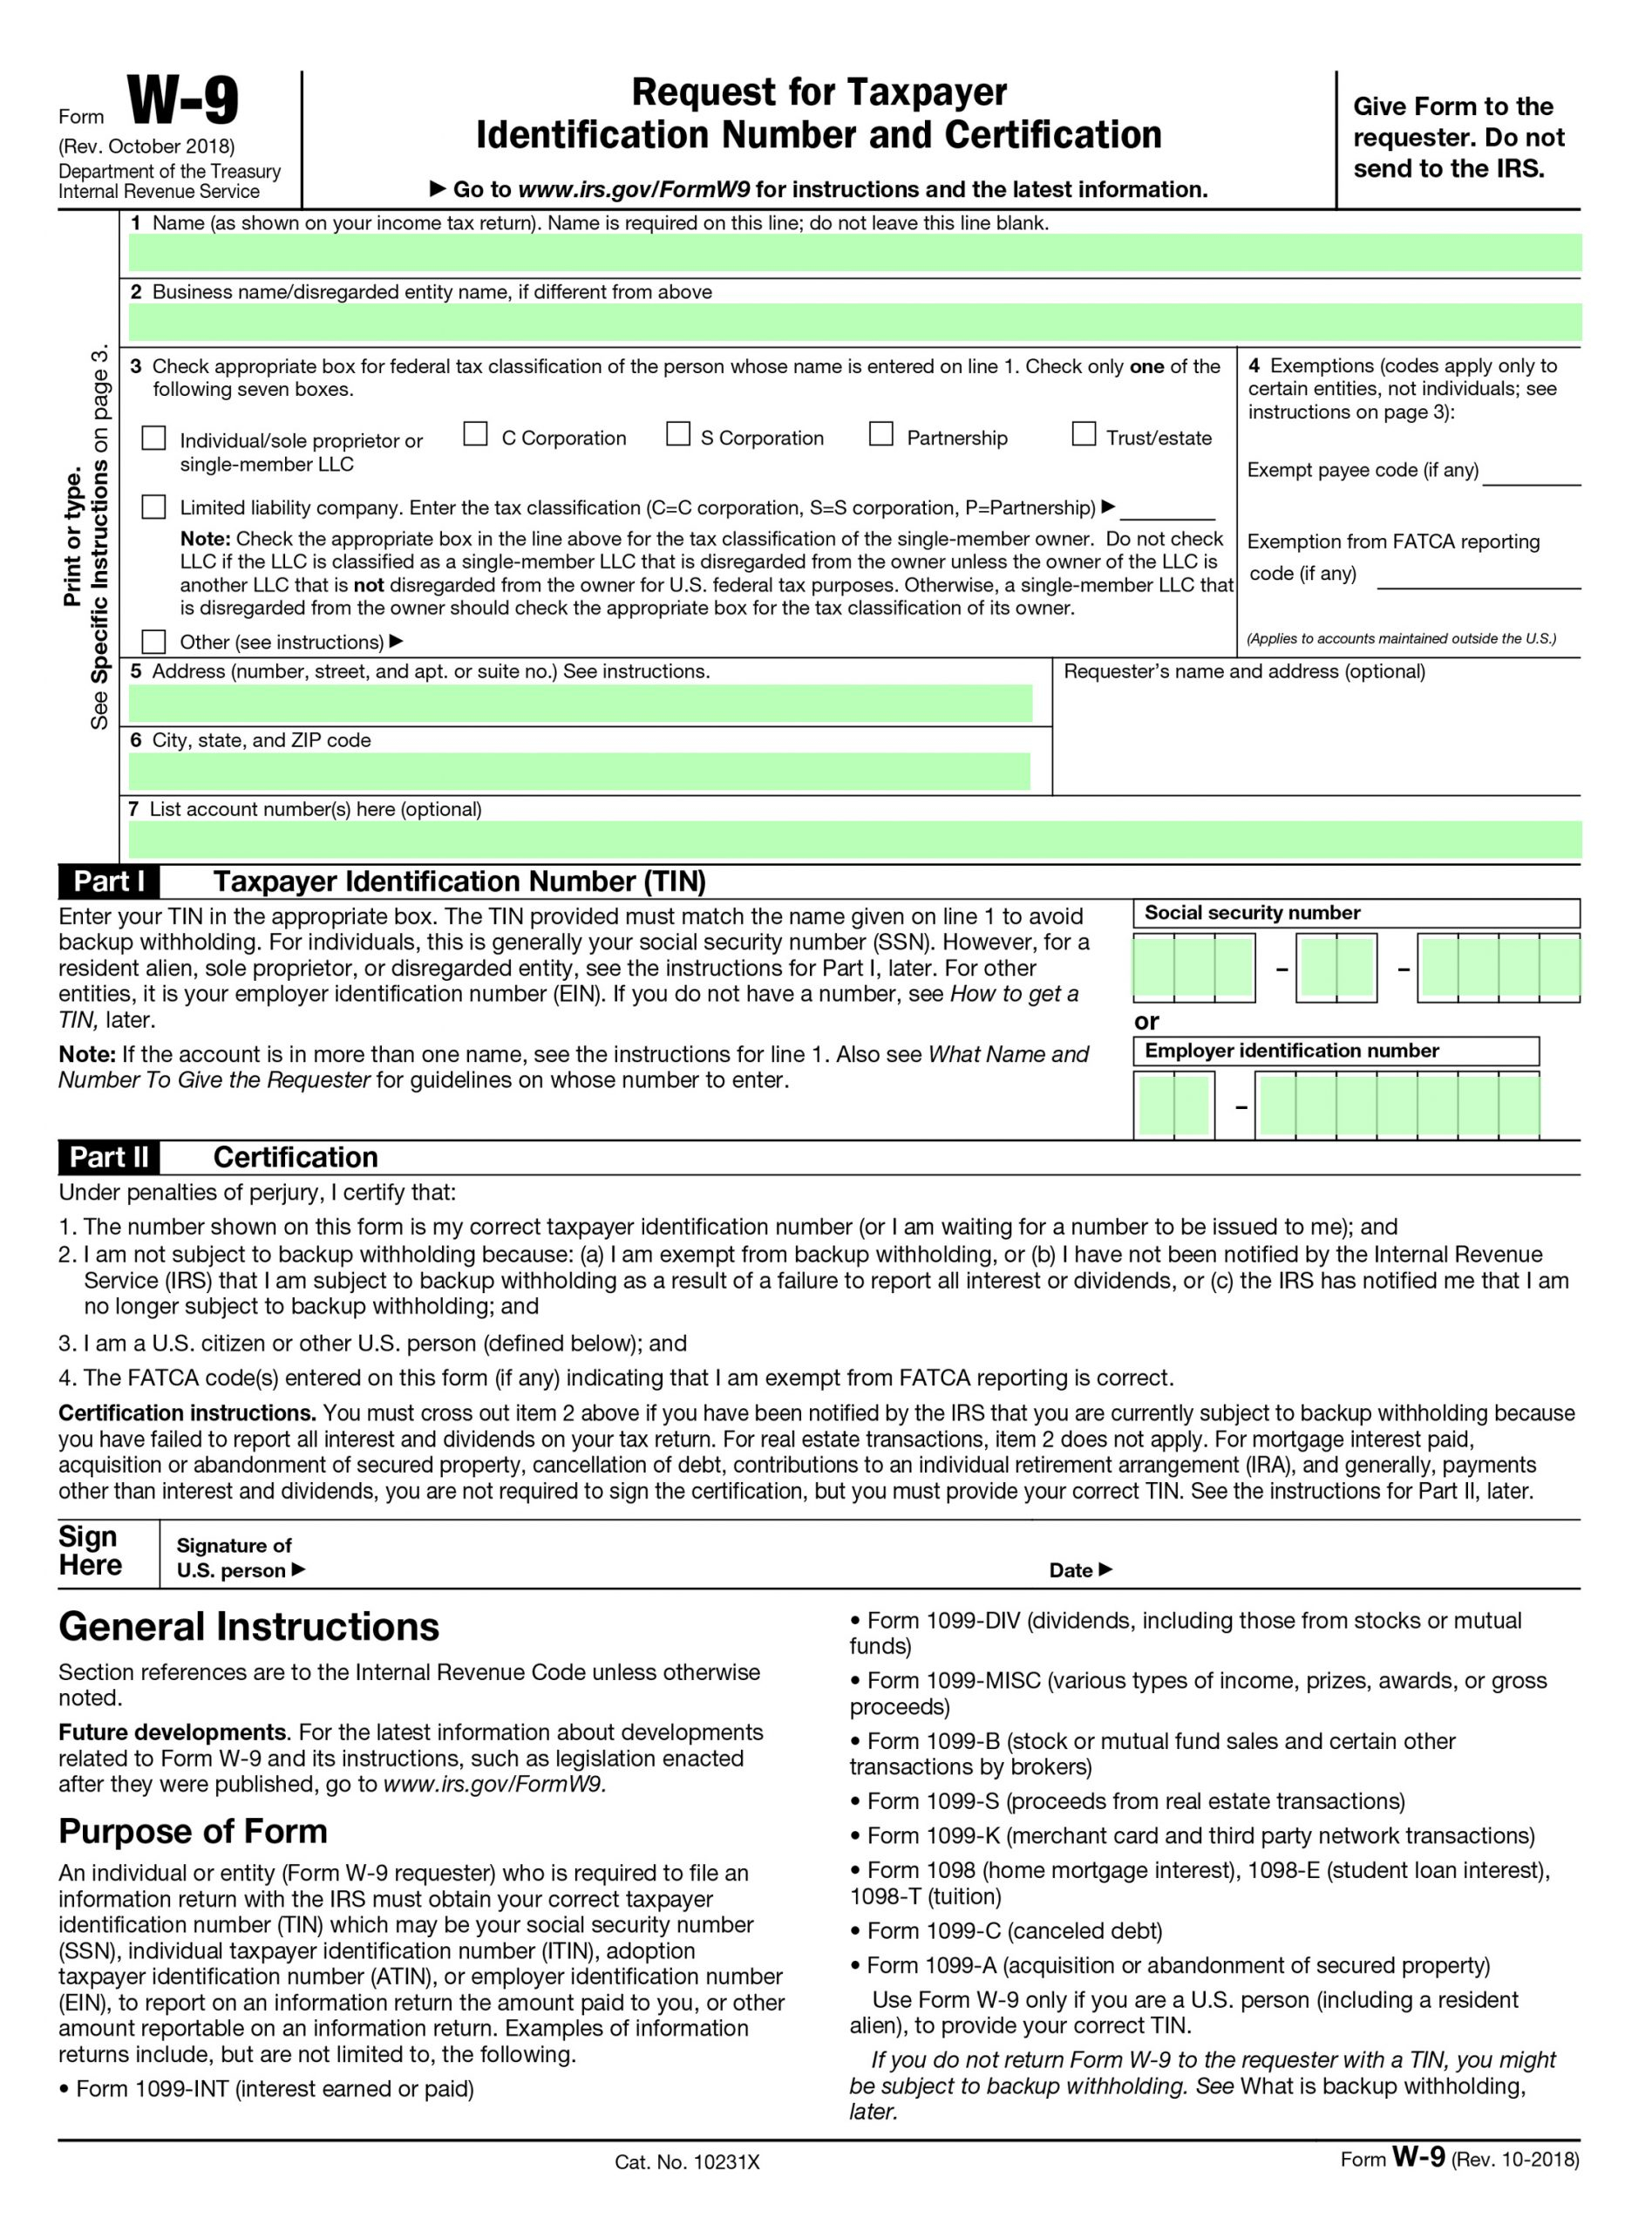 Filling Irs Form W-9 - Editable, Printable Blank | Fill Out inside Free W 9 Form